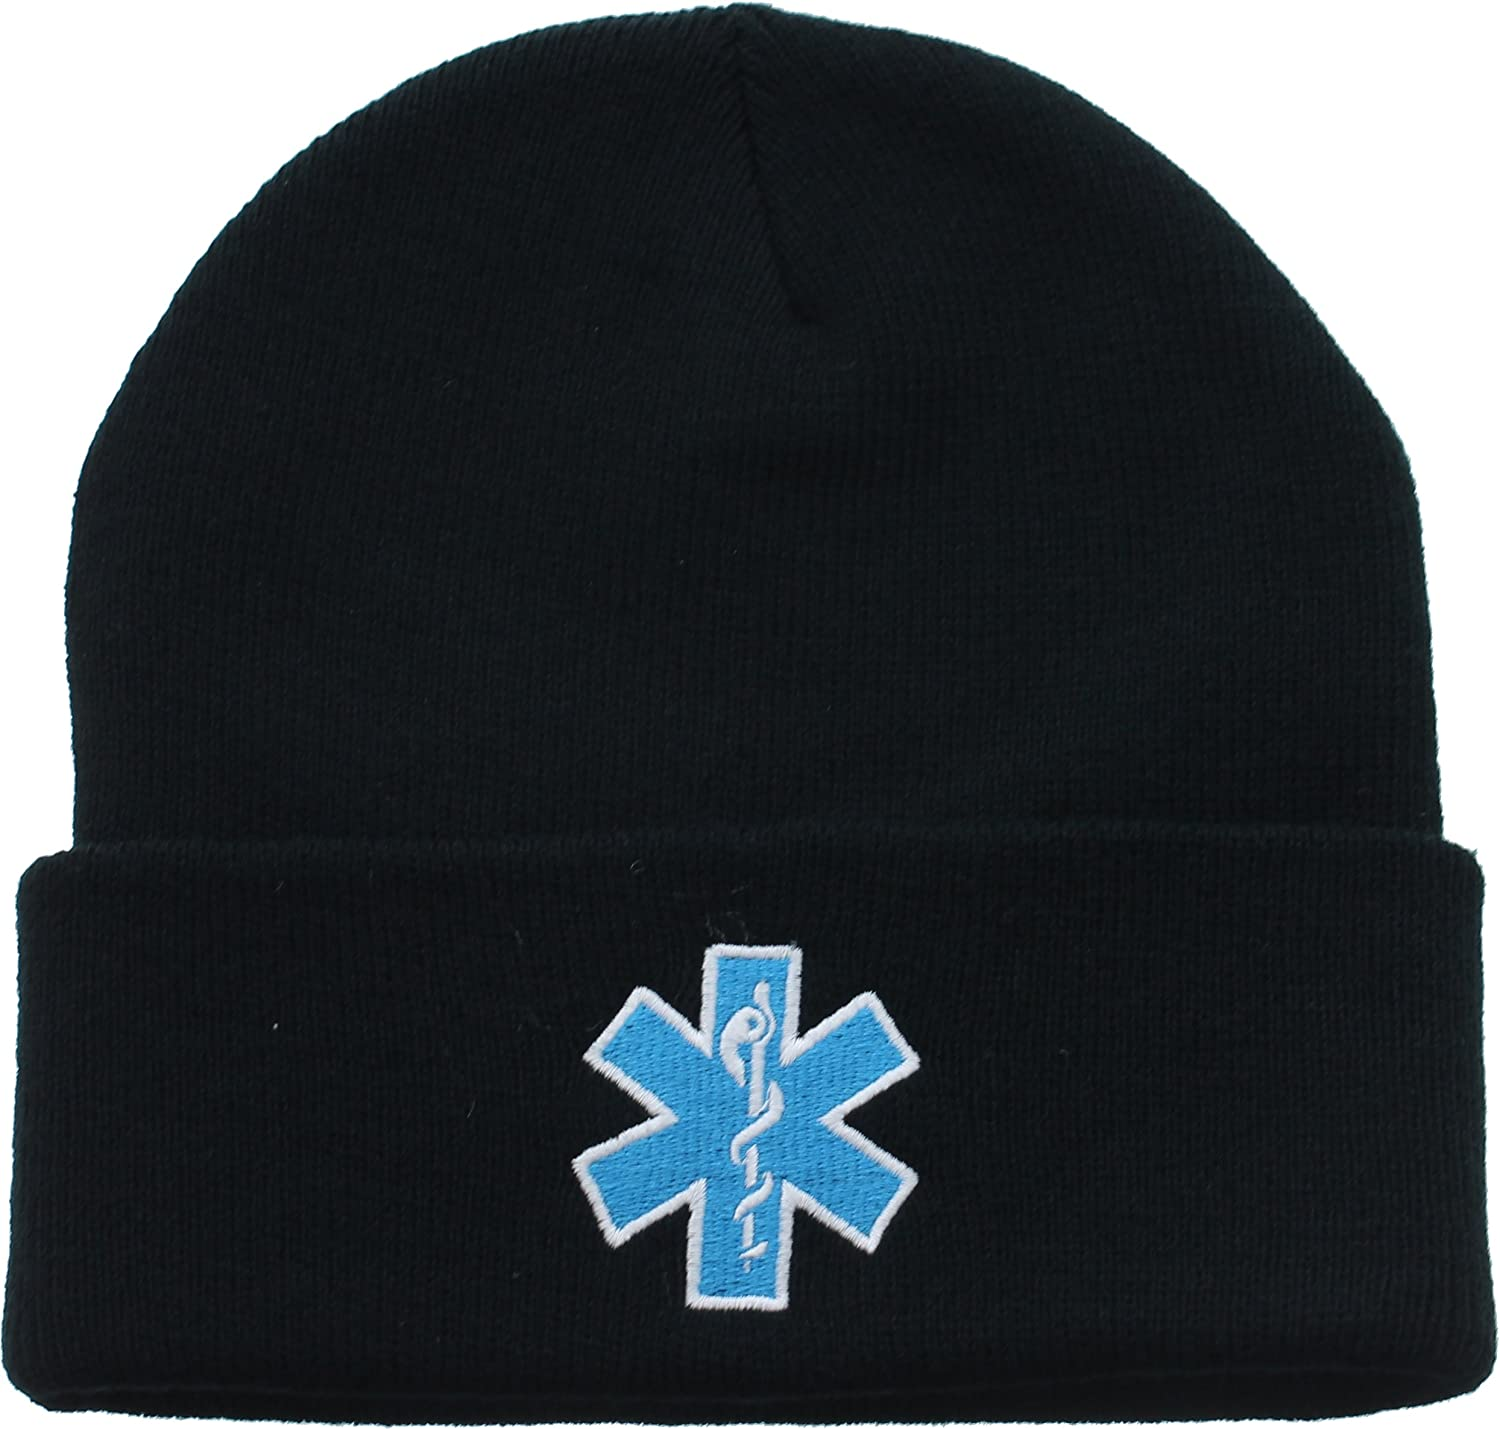 100/% Cotton Bucket Hat with or without name stitched  Embroidered EMT logo Bucket Hat  Emergency medical technician